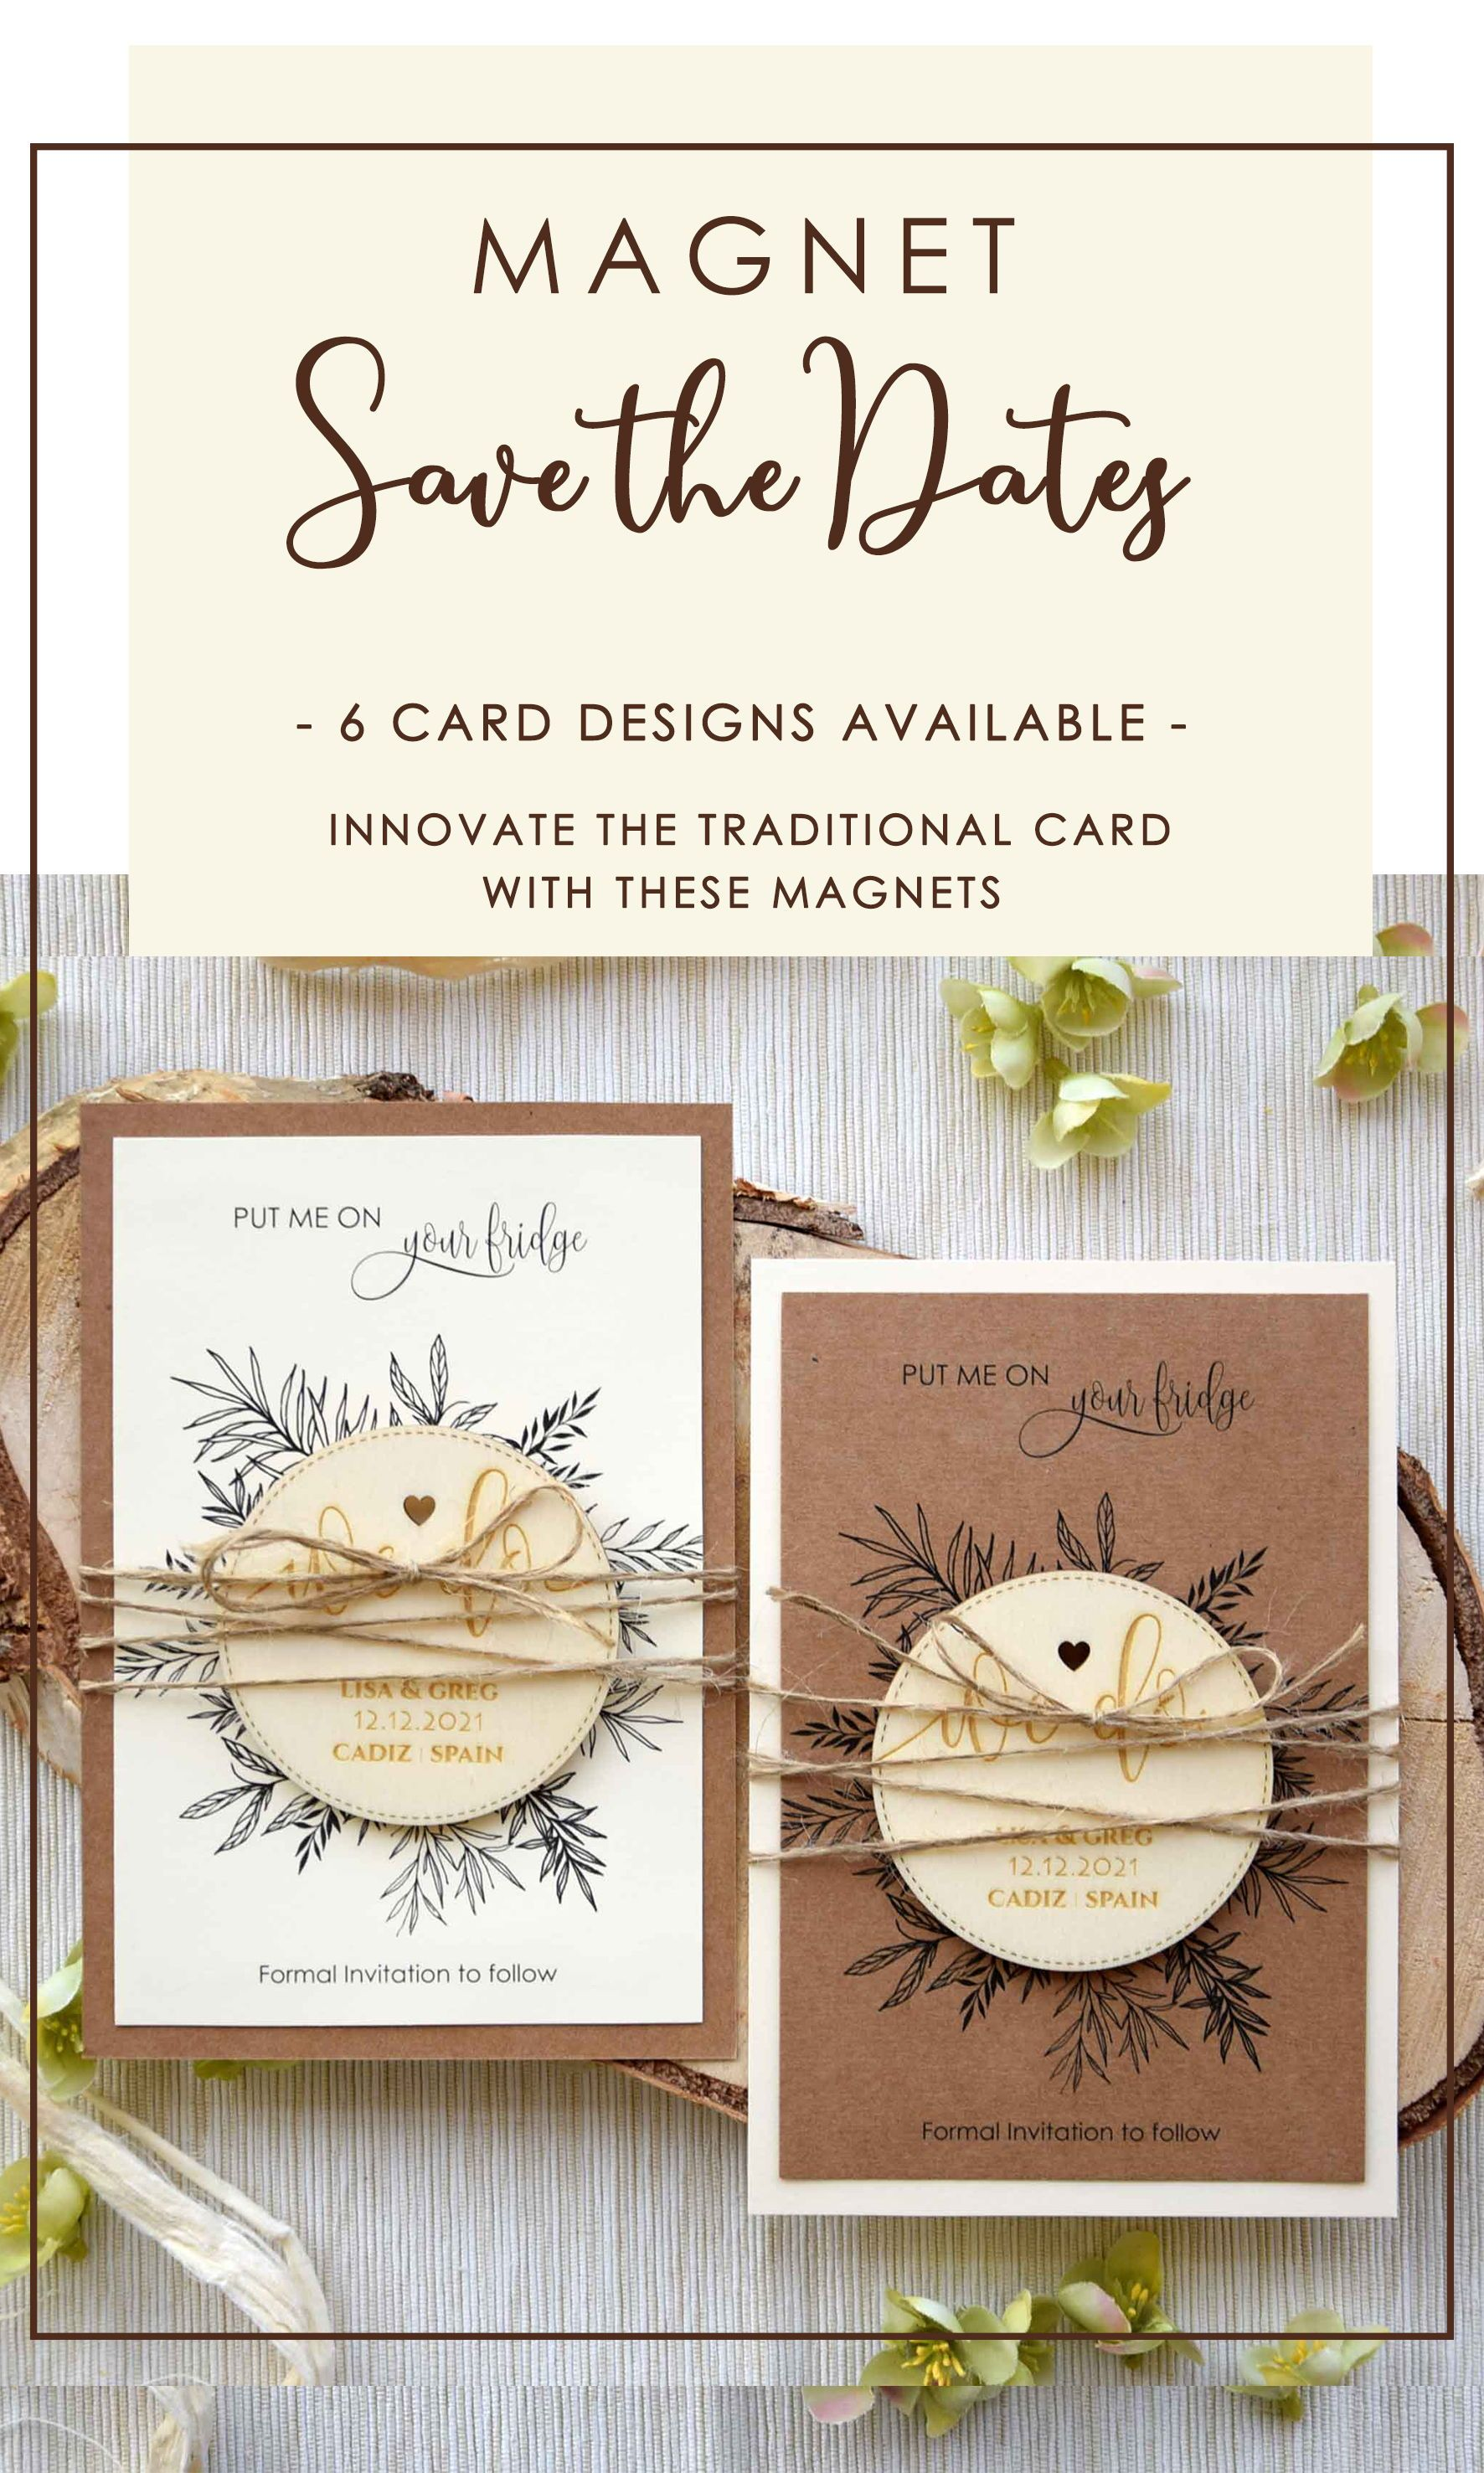 Save the Date magnet-Desert Save the Date-Custom save the date-Rustic save the date-Desert Wedding magnet-Save the Date postcard-cactus